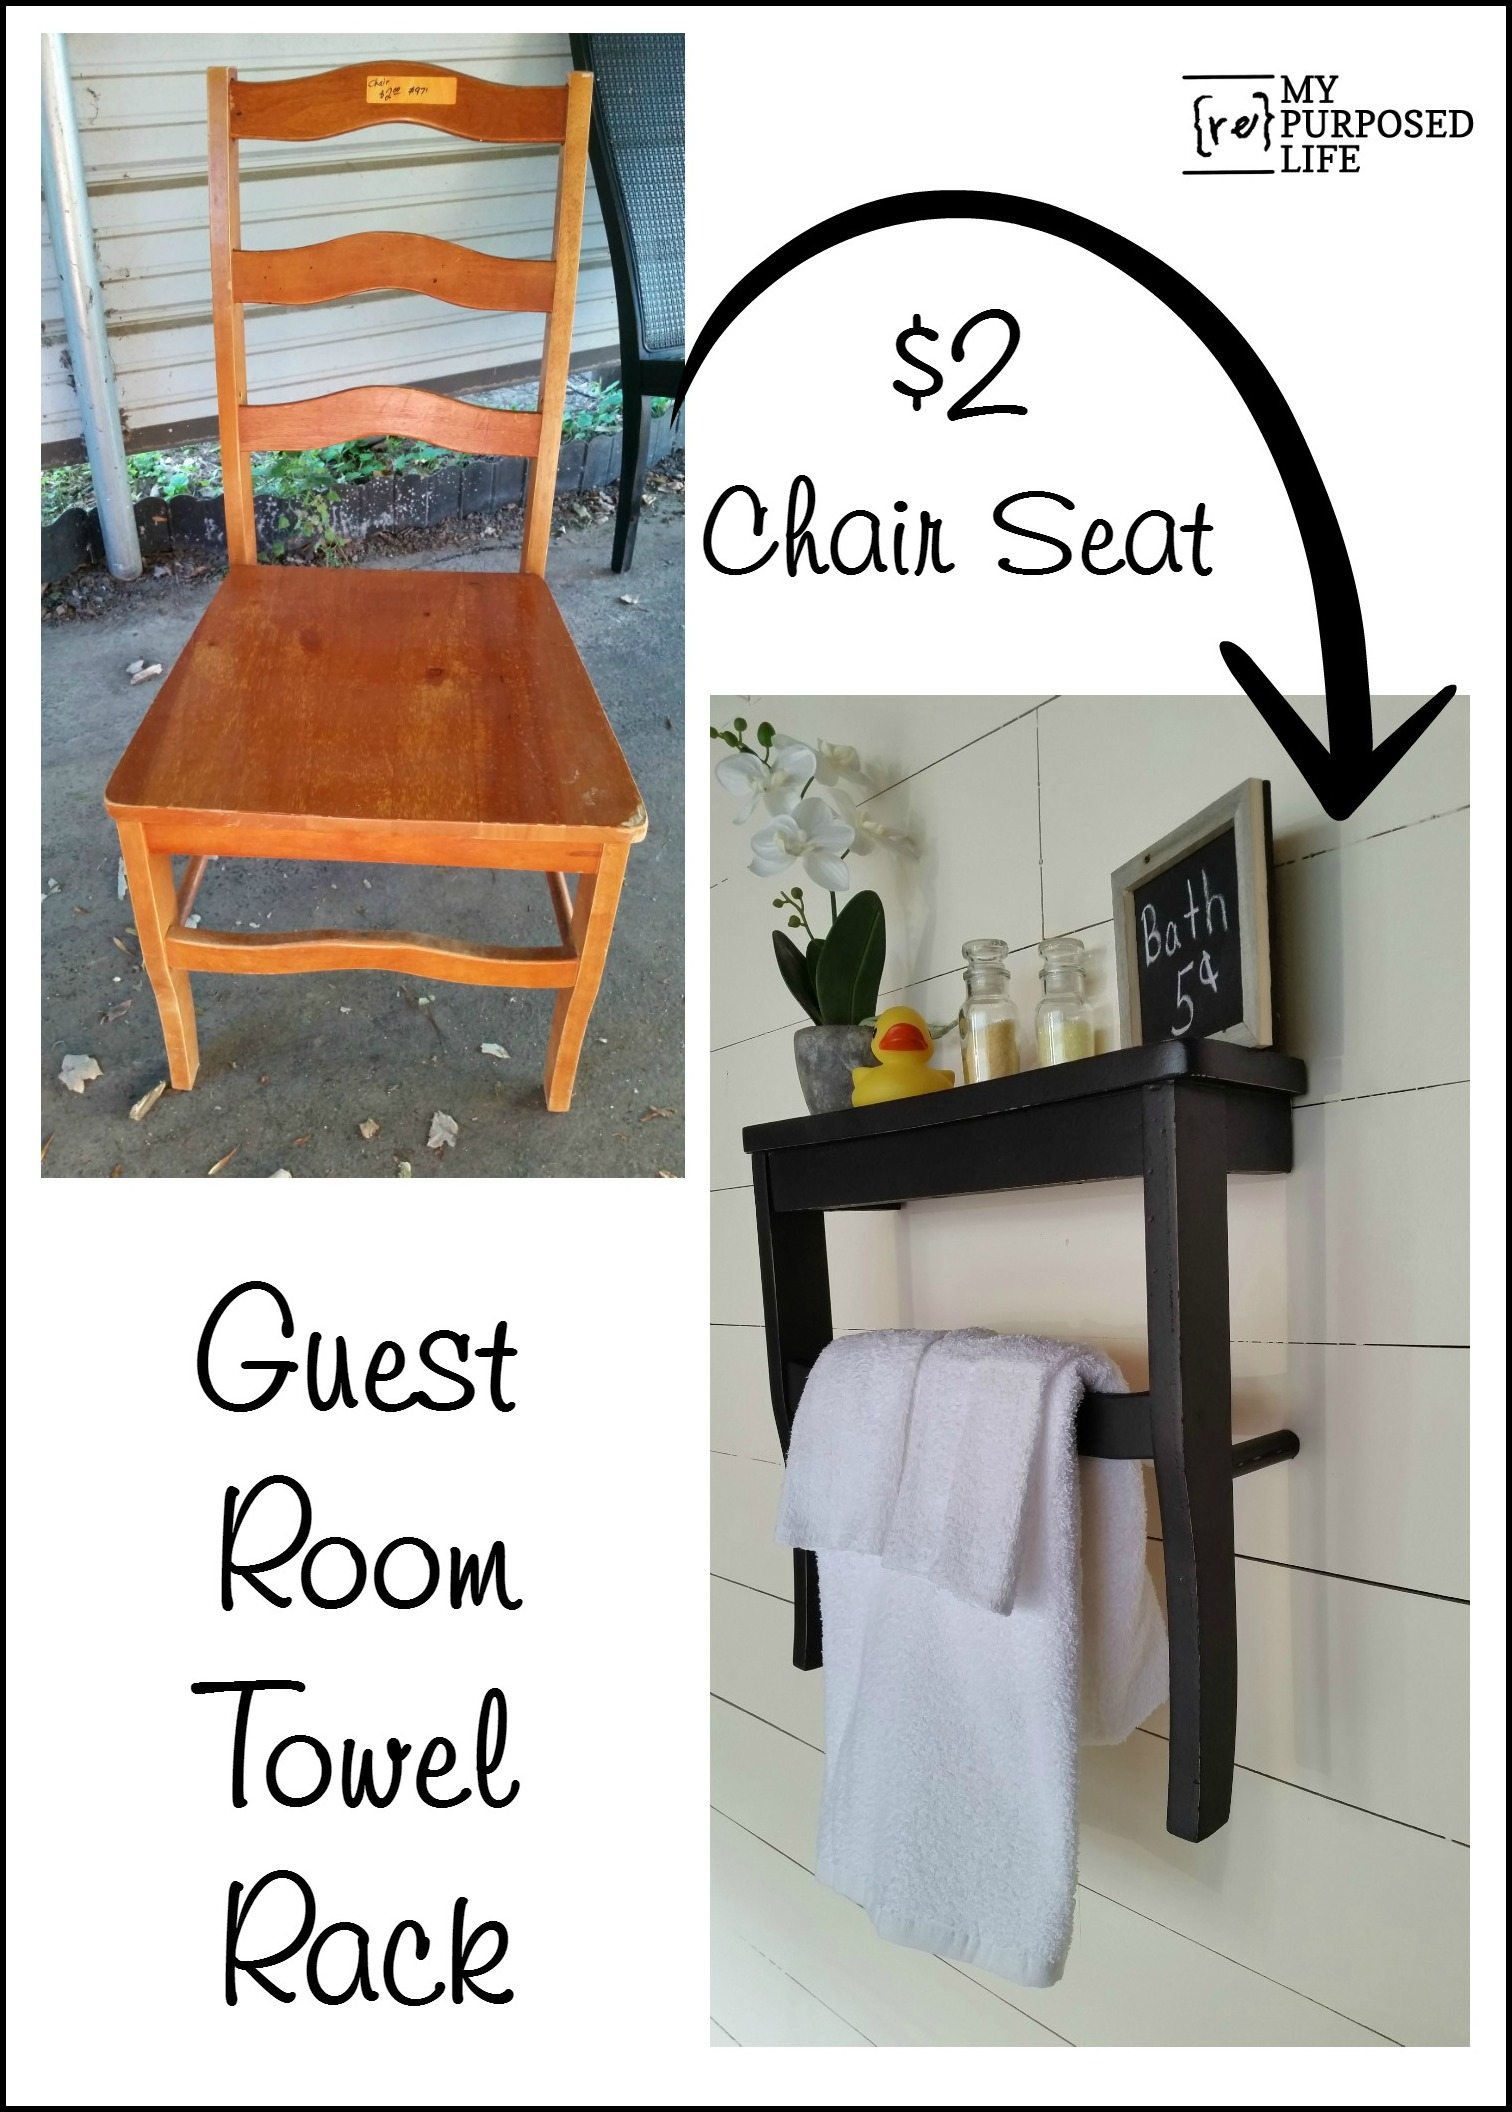 How to make a guest room towel rack shelf using an old chair MyRepurposedLife.com